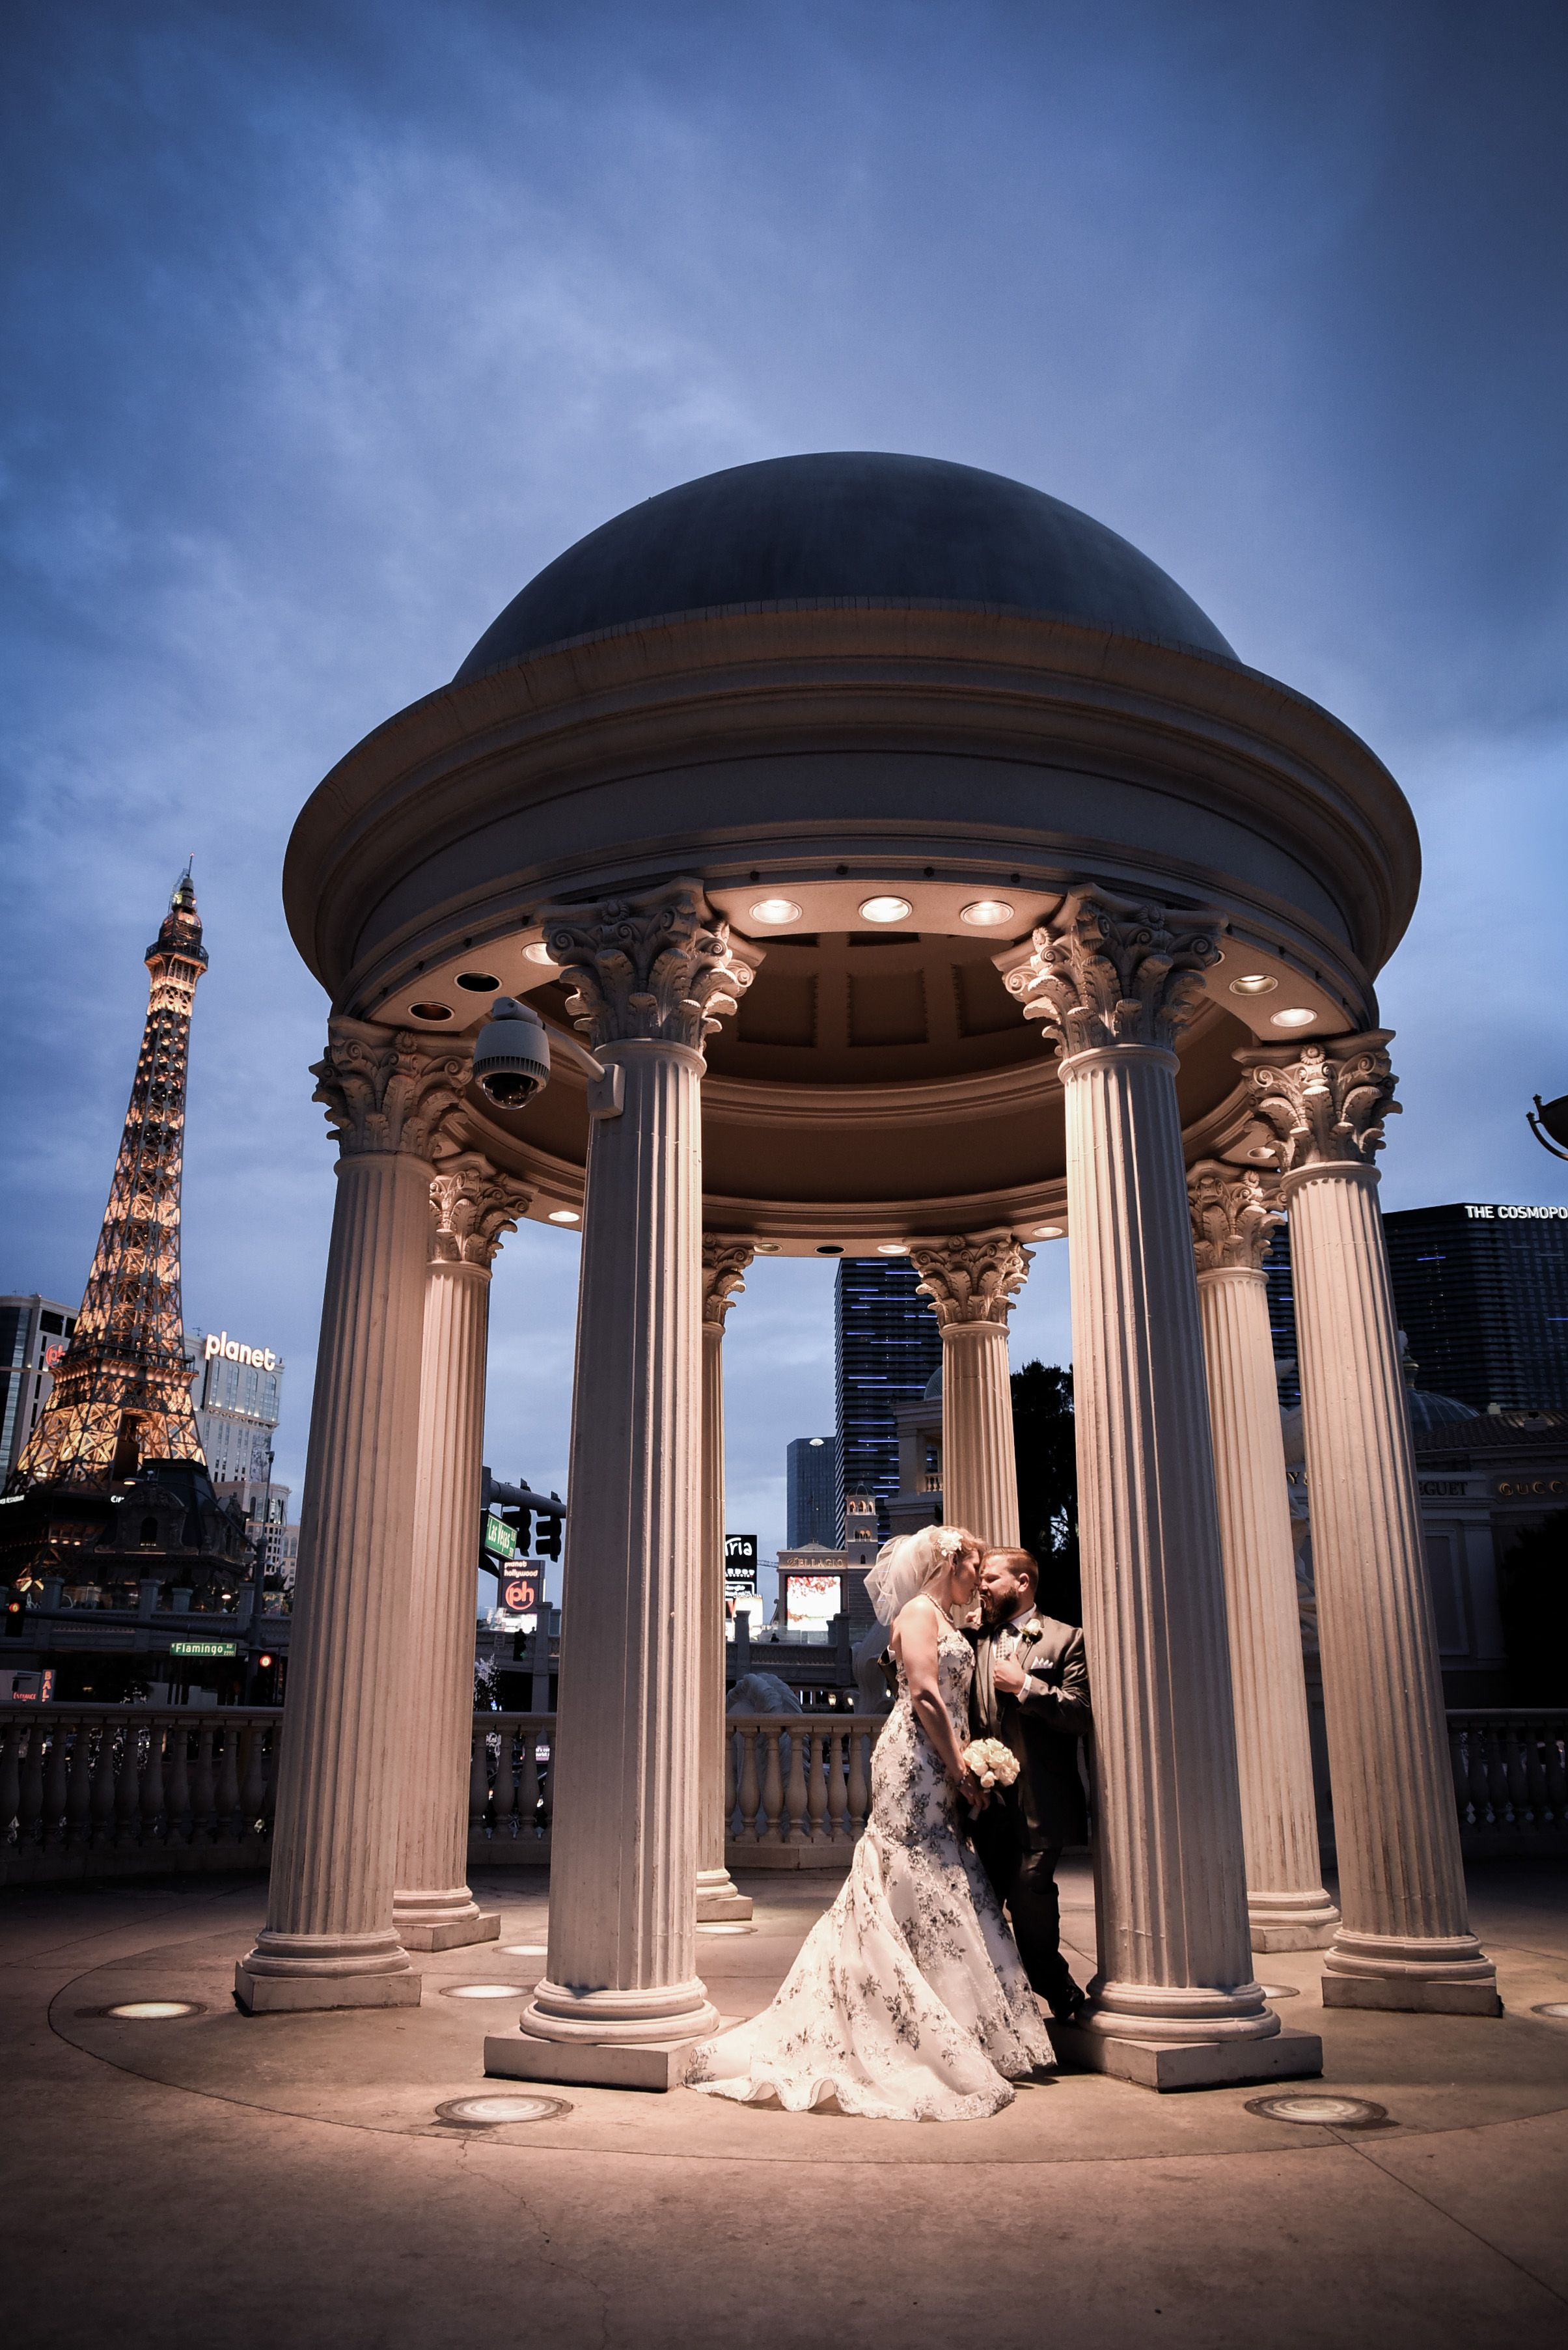 Caesar S Palace Las Vegas Wedding Photo By Chapel Of The Flowers Best Little In Offers Strip Shoots